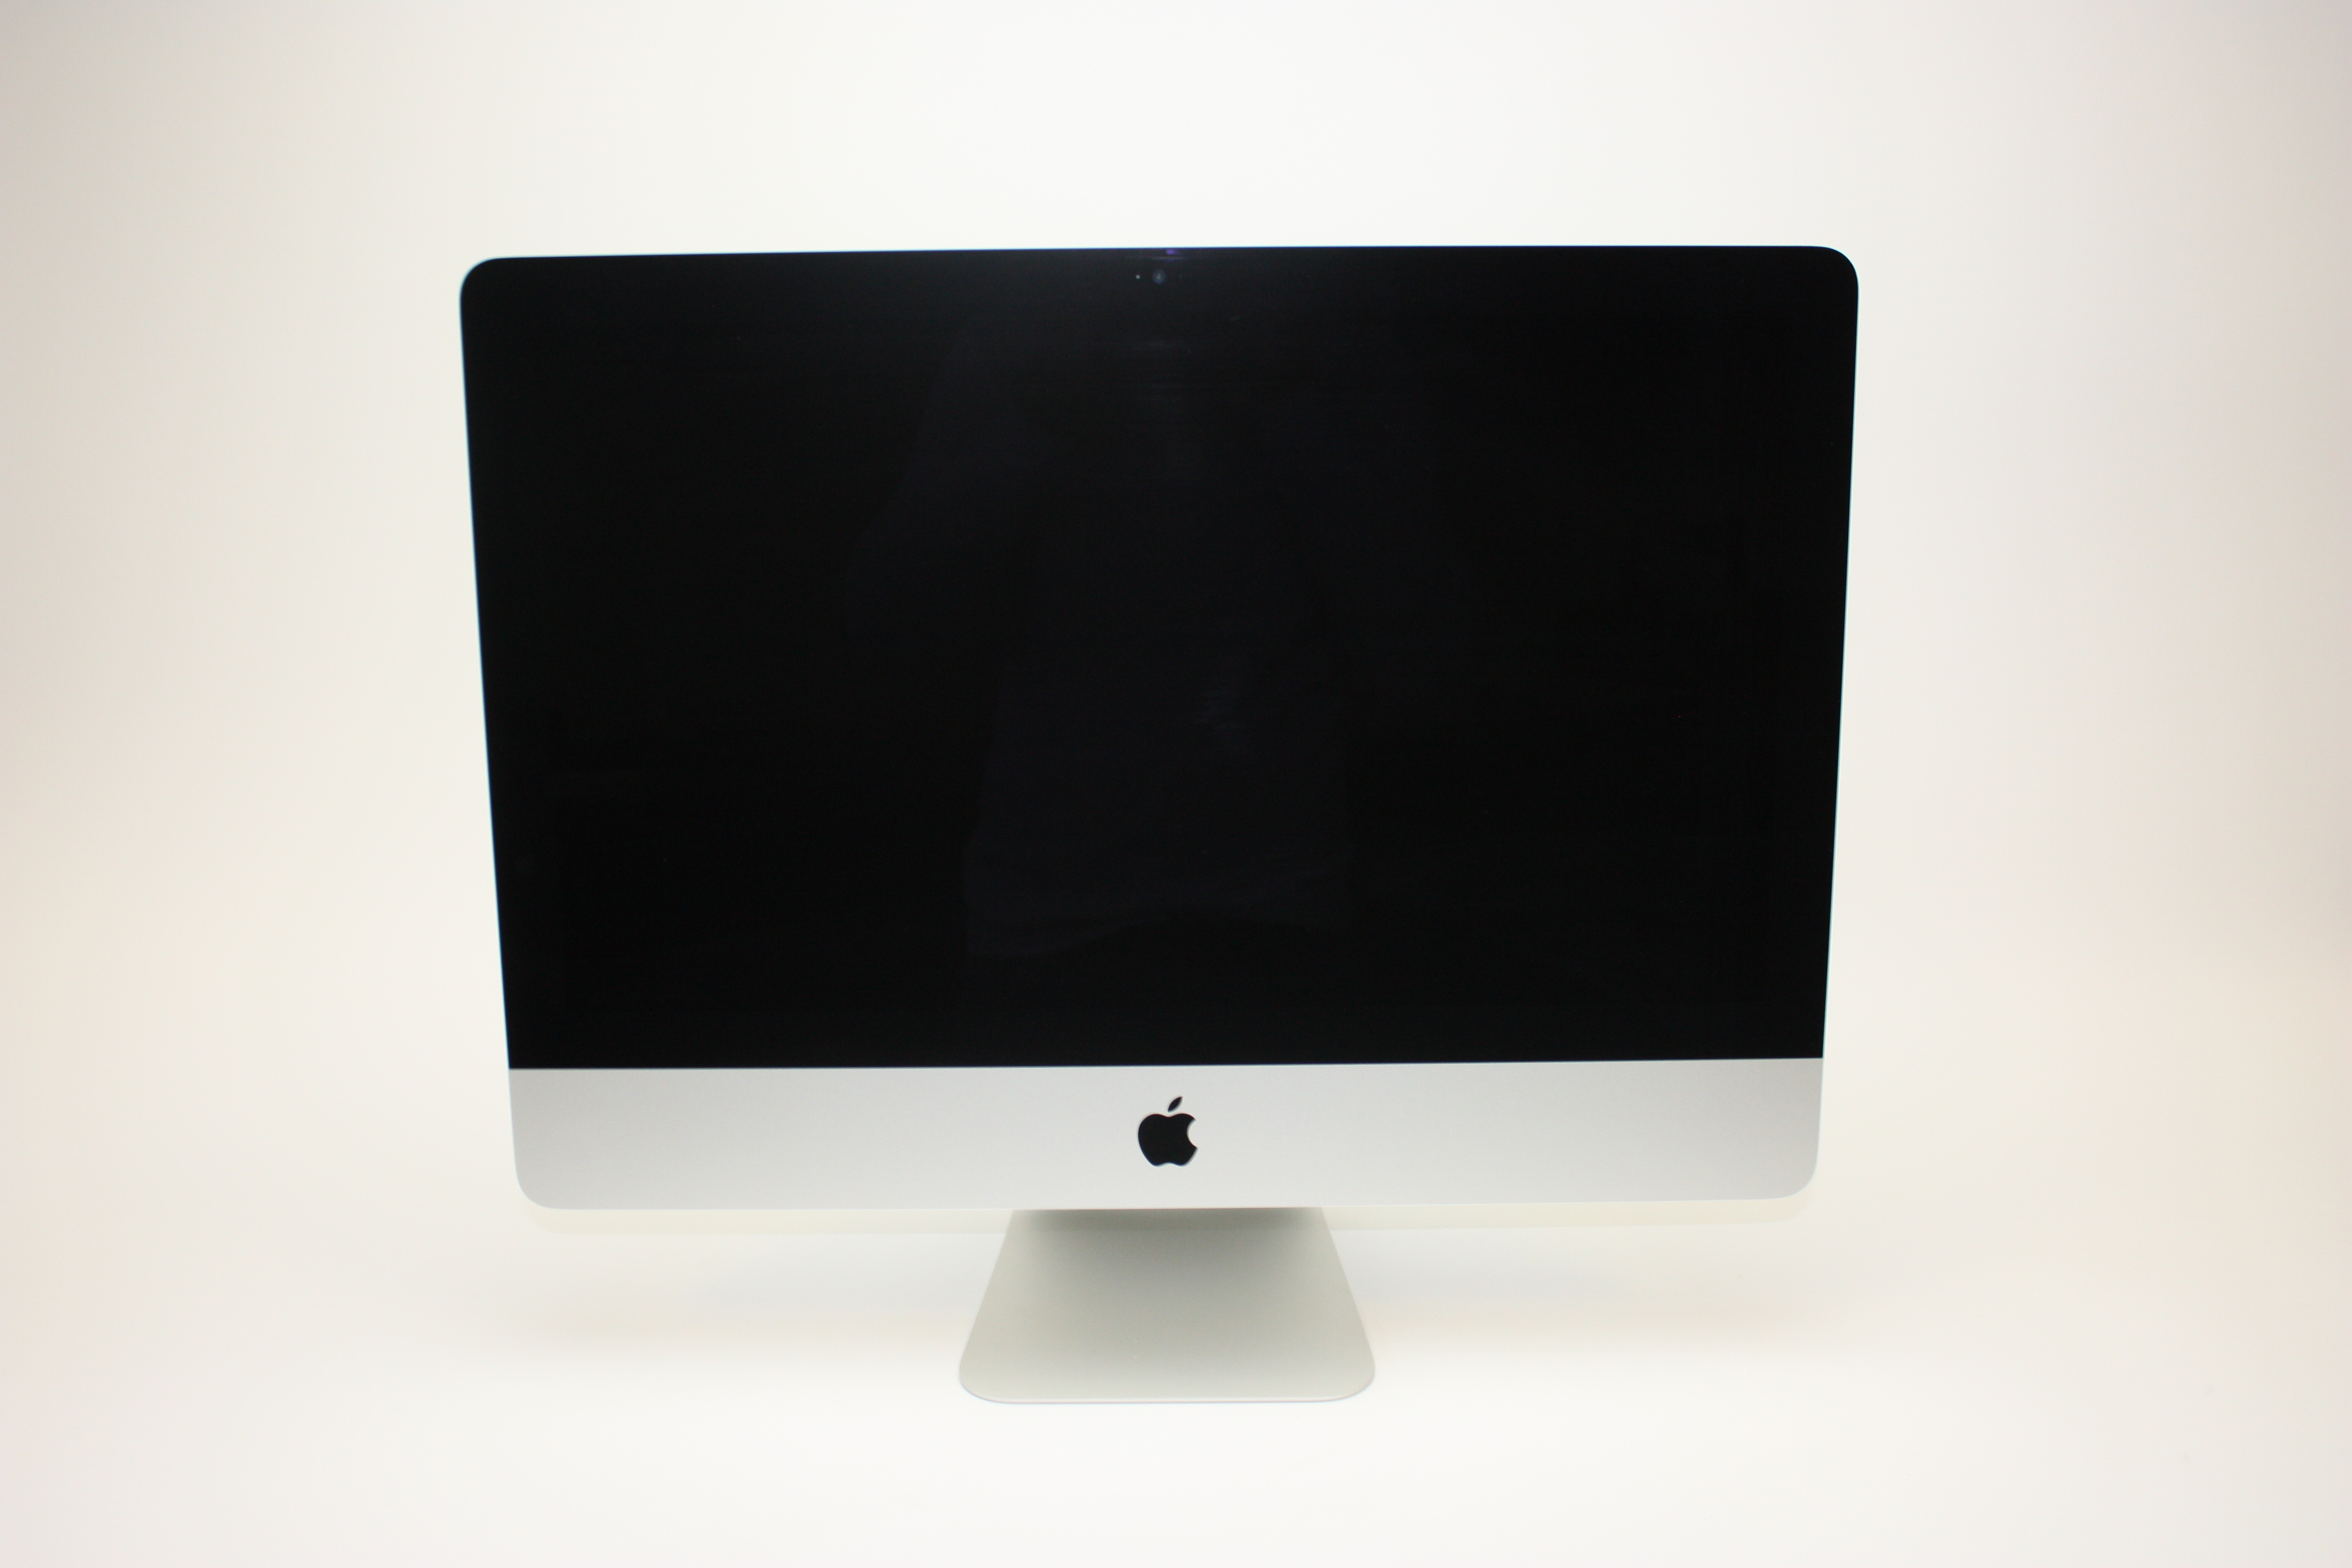 iMac (21.5-inch Late 2015), 1.6 GHz Intel Core i5, 8 GB 1867 MHz DDR3, 1 TB SATA Disk, Product age: 31 months, image 1